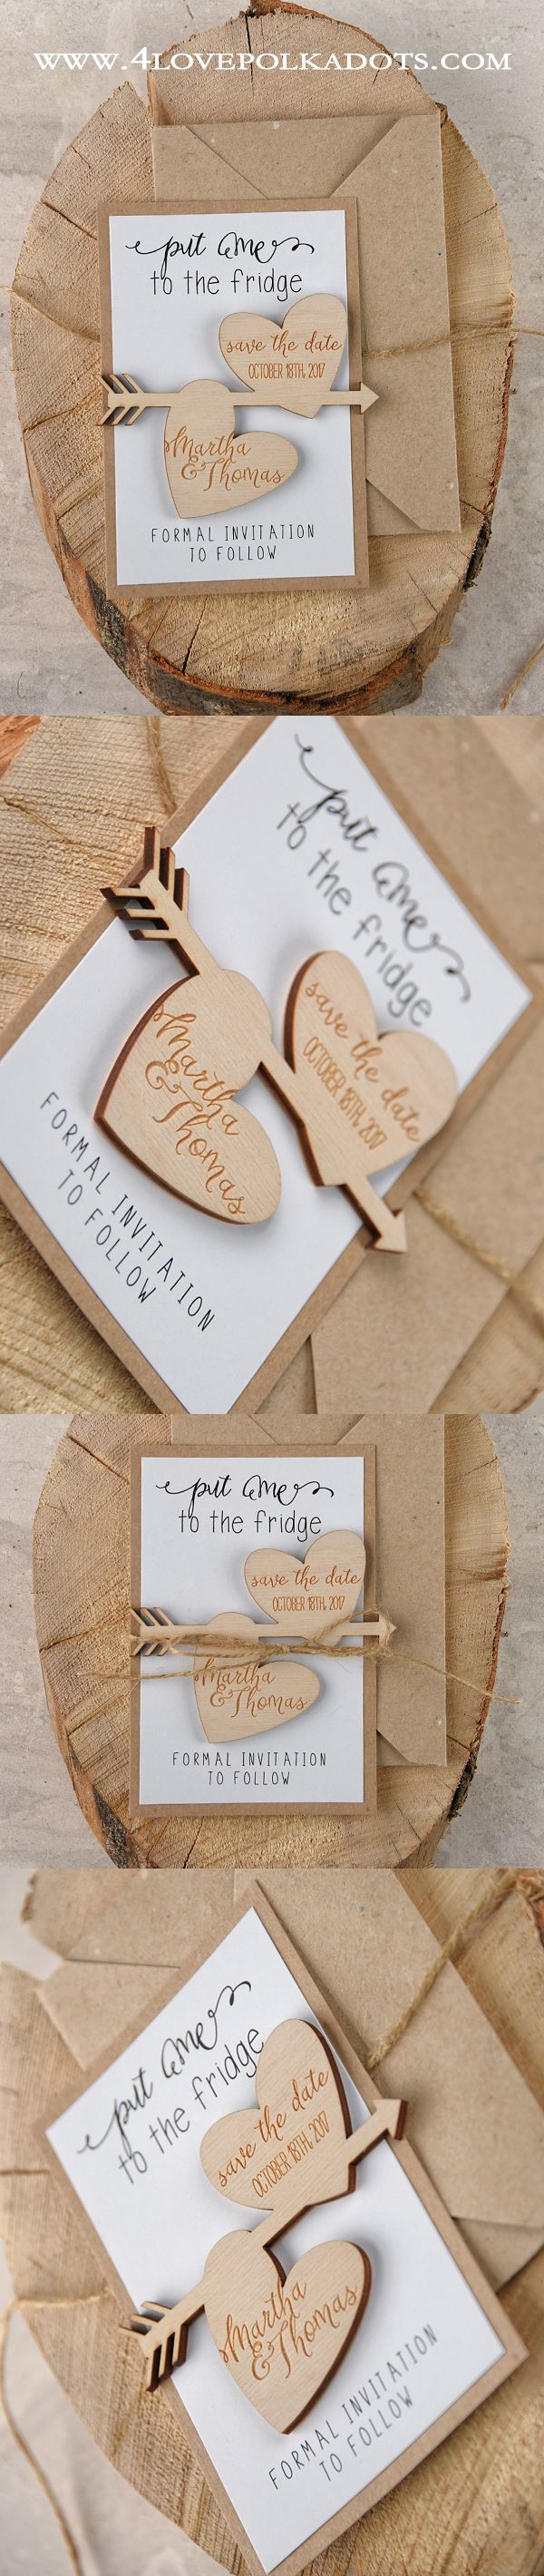 Don't forget to Save the Date ! Rustic Wedding Save the Date cards with wooden hearts #wedding